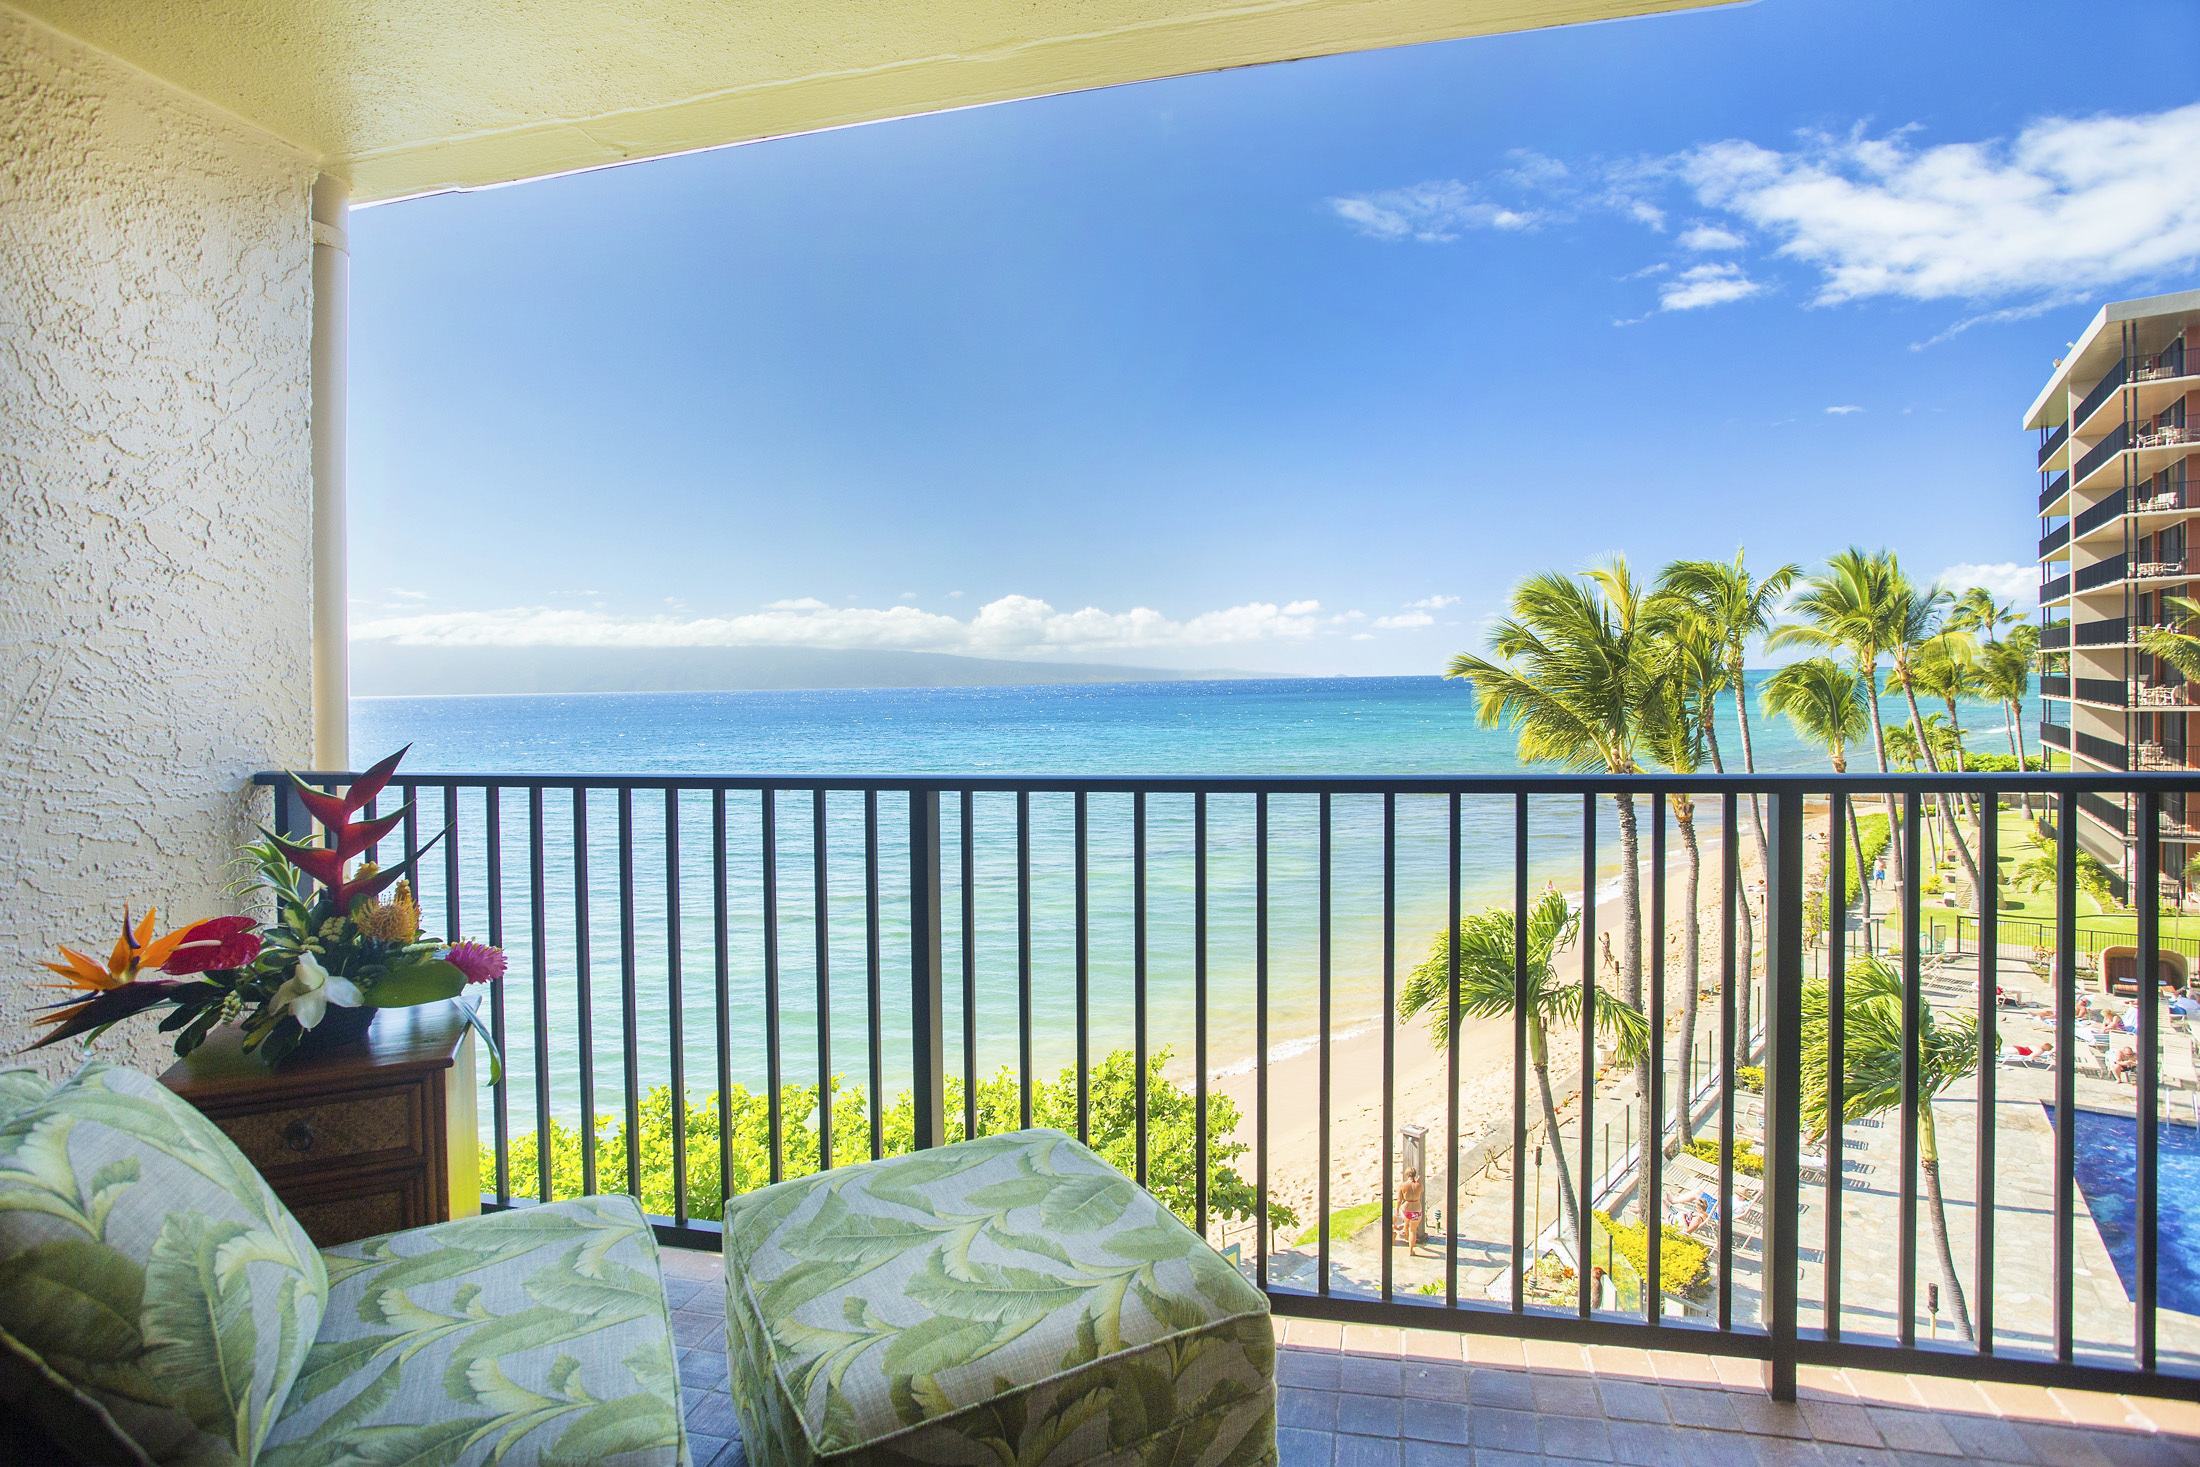 How to Have Your Best Multigenerational Summer Vacation … Island Style - With stunning ocean views and condo-resort style accommodations, Aston Kaanapali Shores on Maui is the spot for multigenerational travelers to enjoy summer vacations with the entire family. (Photo: Business Wire)